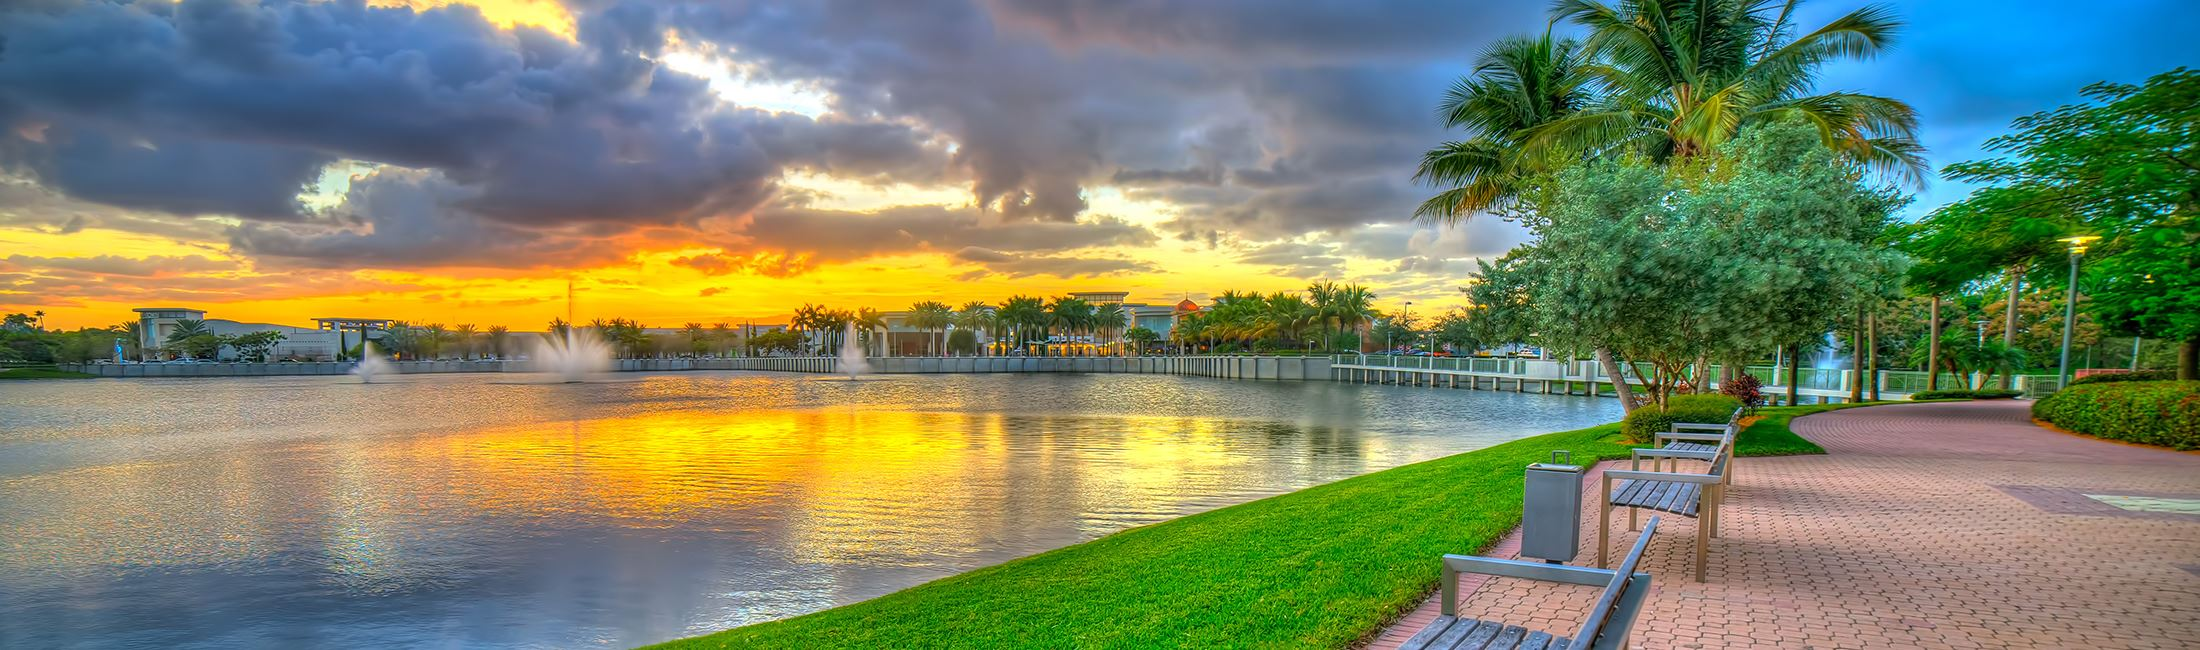 Palm Beach Gardens, FL - Official Website